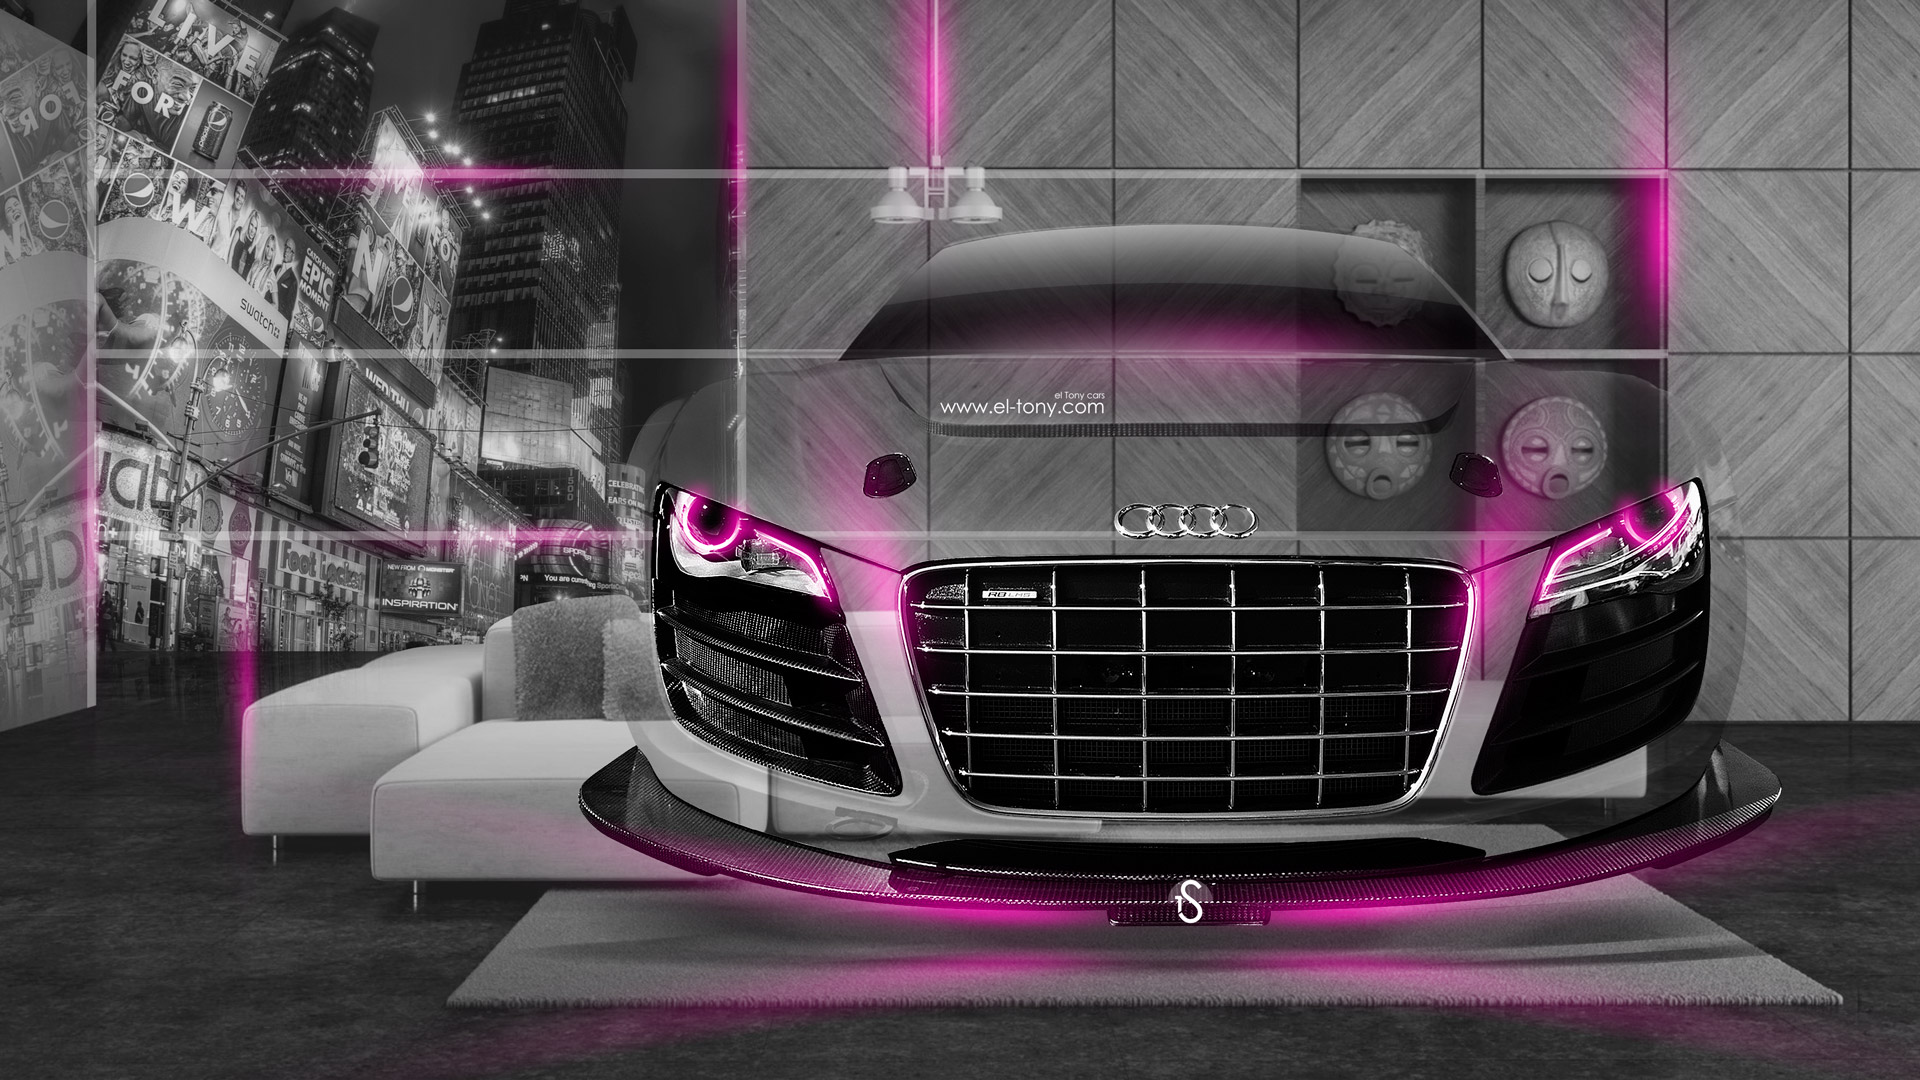 Infiniti FX Side Fantasy Flowers Car 2014 · Audi R8 Fantasy Crystal Home  Fly Car 2014